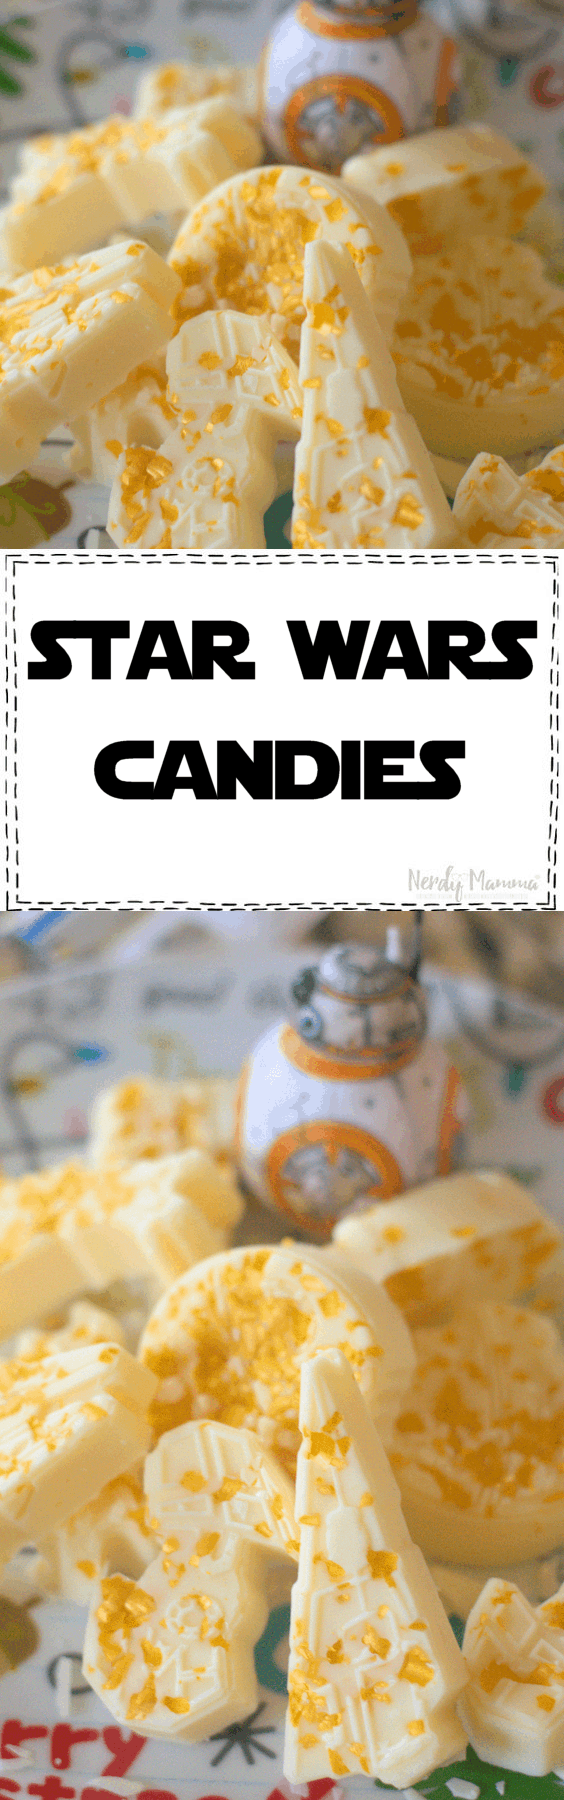 Star Wars Candies!